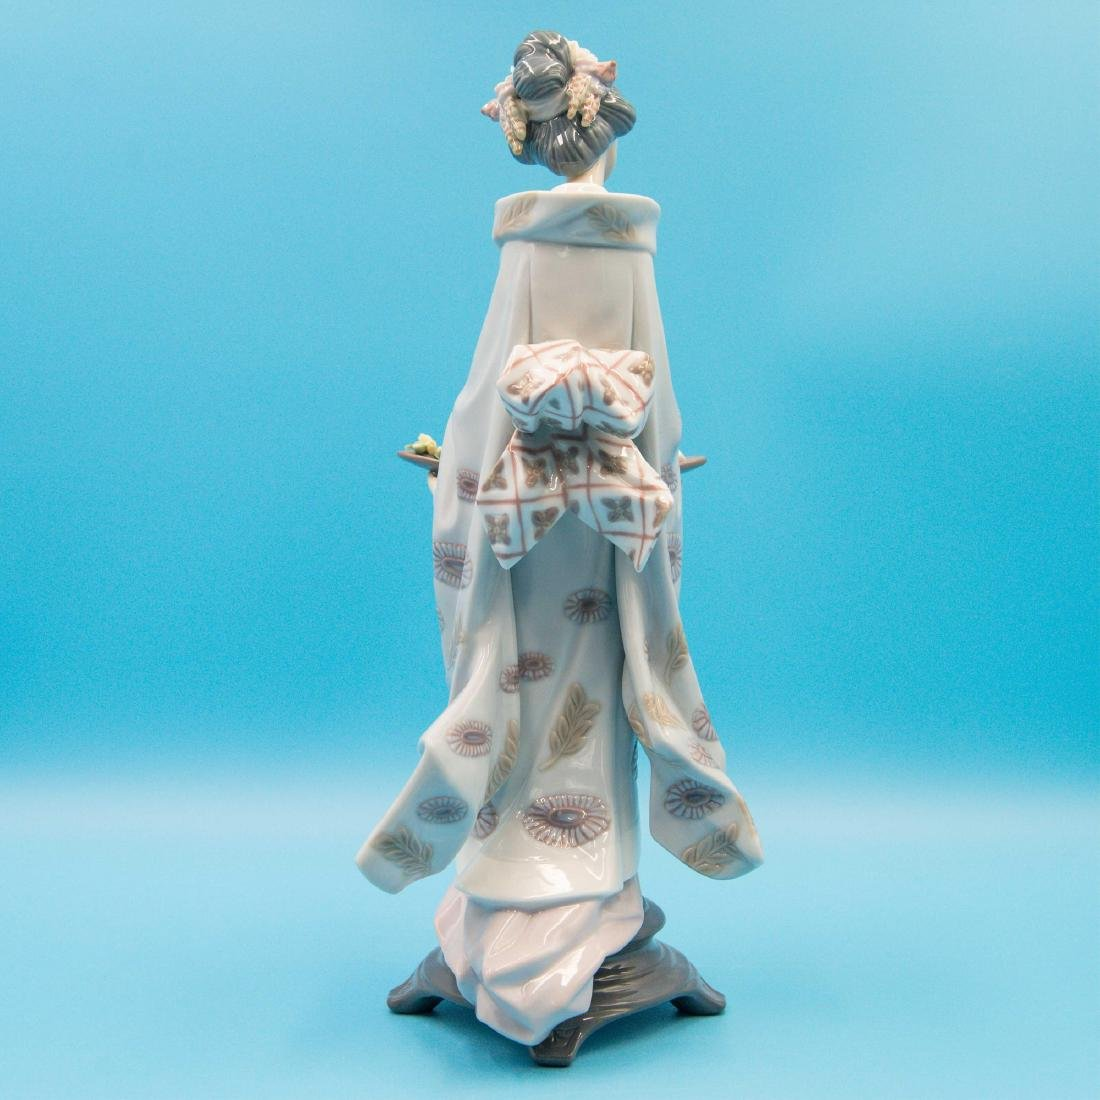 LLADRO NATURE'S GIFTS PORCELAIN FIGURINE - 3